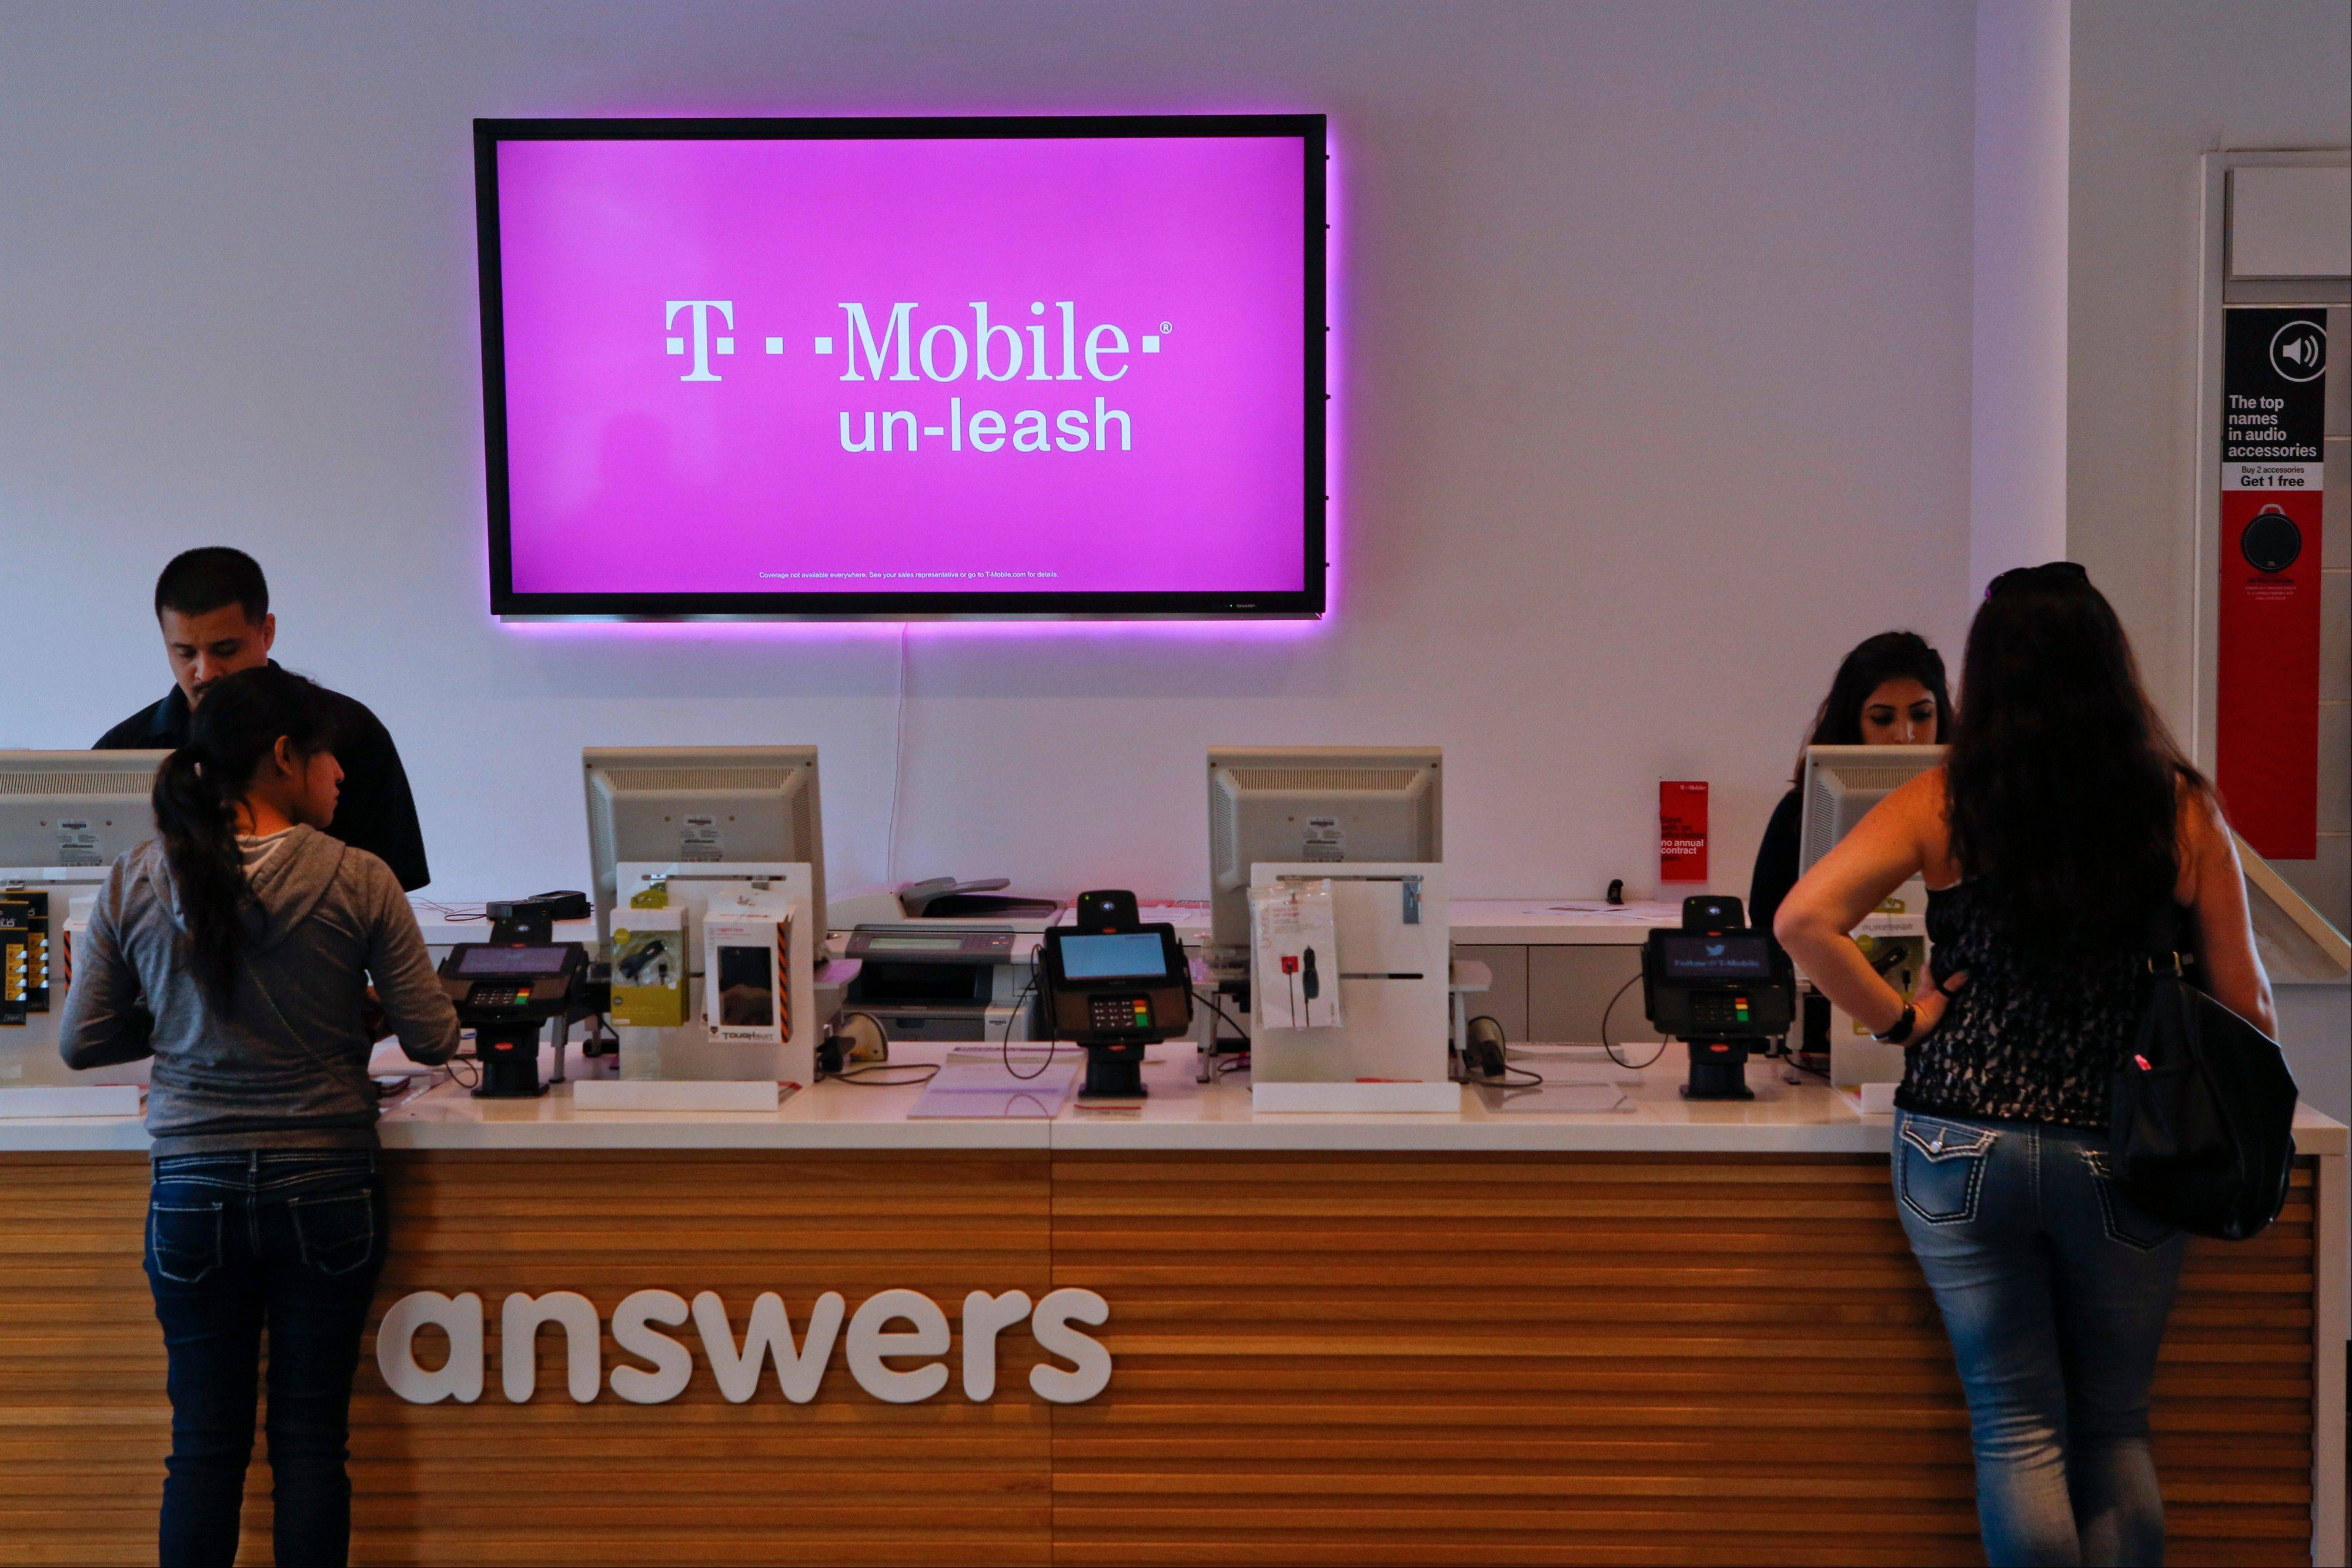 T-Mobile's initiatives to break wireless industry conventions seem to be working. The No. 4 wireless company said Tuesday that it added 643,000 long-term, good-credit phone customers in the latest quarter. It's the second straight quarter of increase after years of losses.